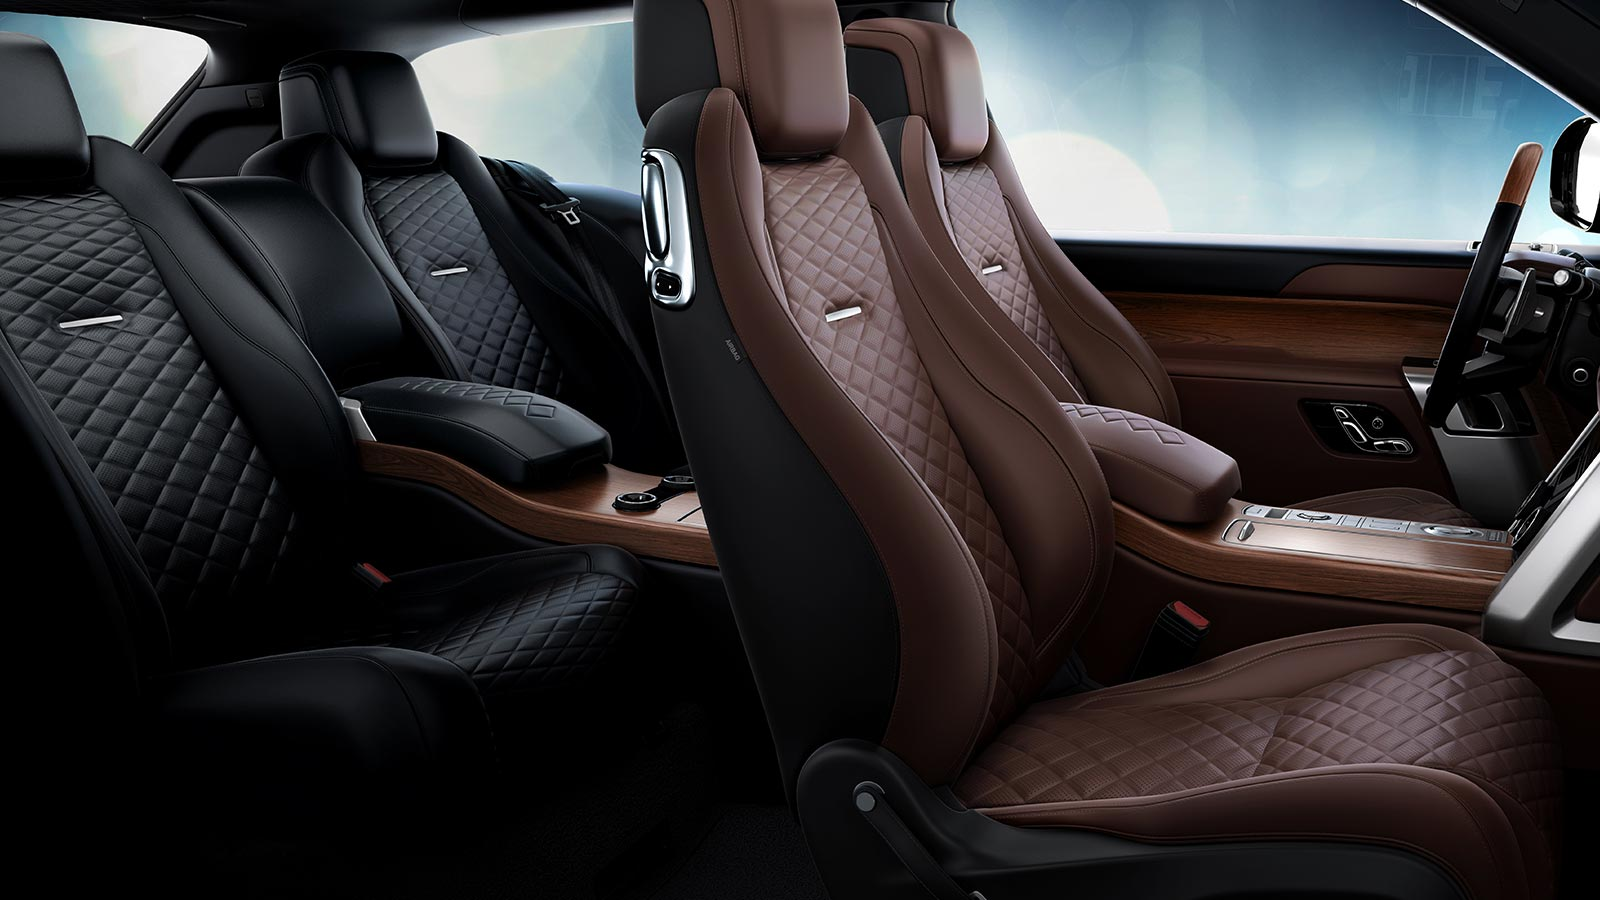 The Range Rover SV Coupe interior in Ebony and Brogue